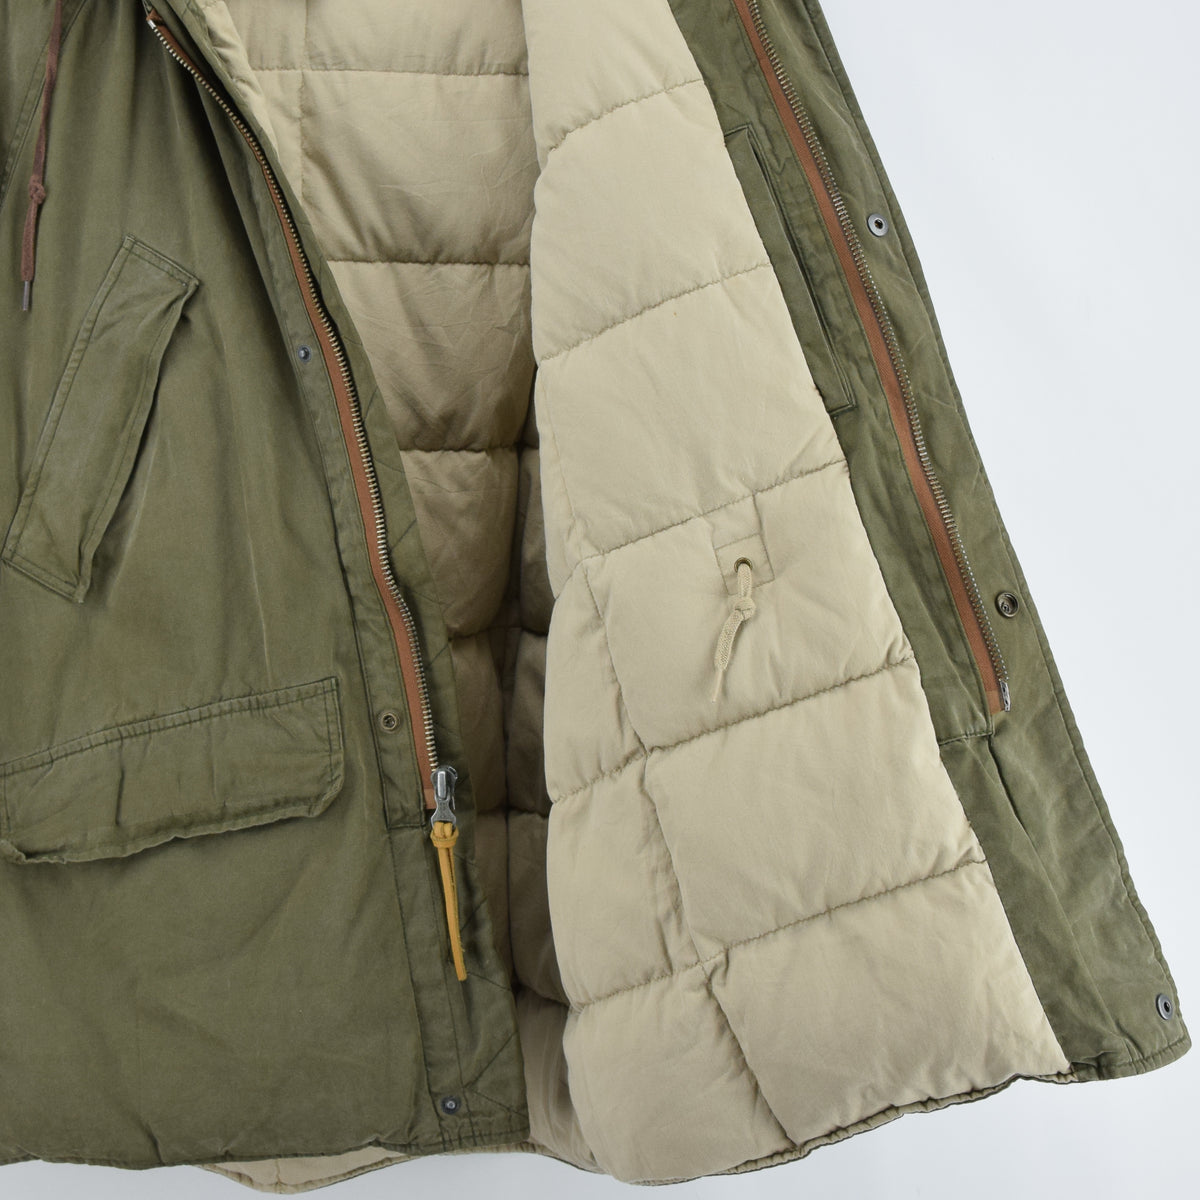 Ralph Lauren Polo Military Style Green Down Parka Jacket Shearling Trim Hood M lining